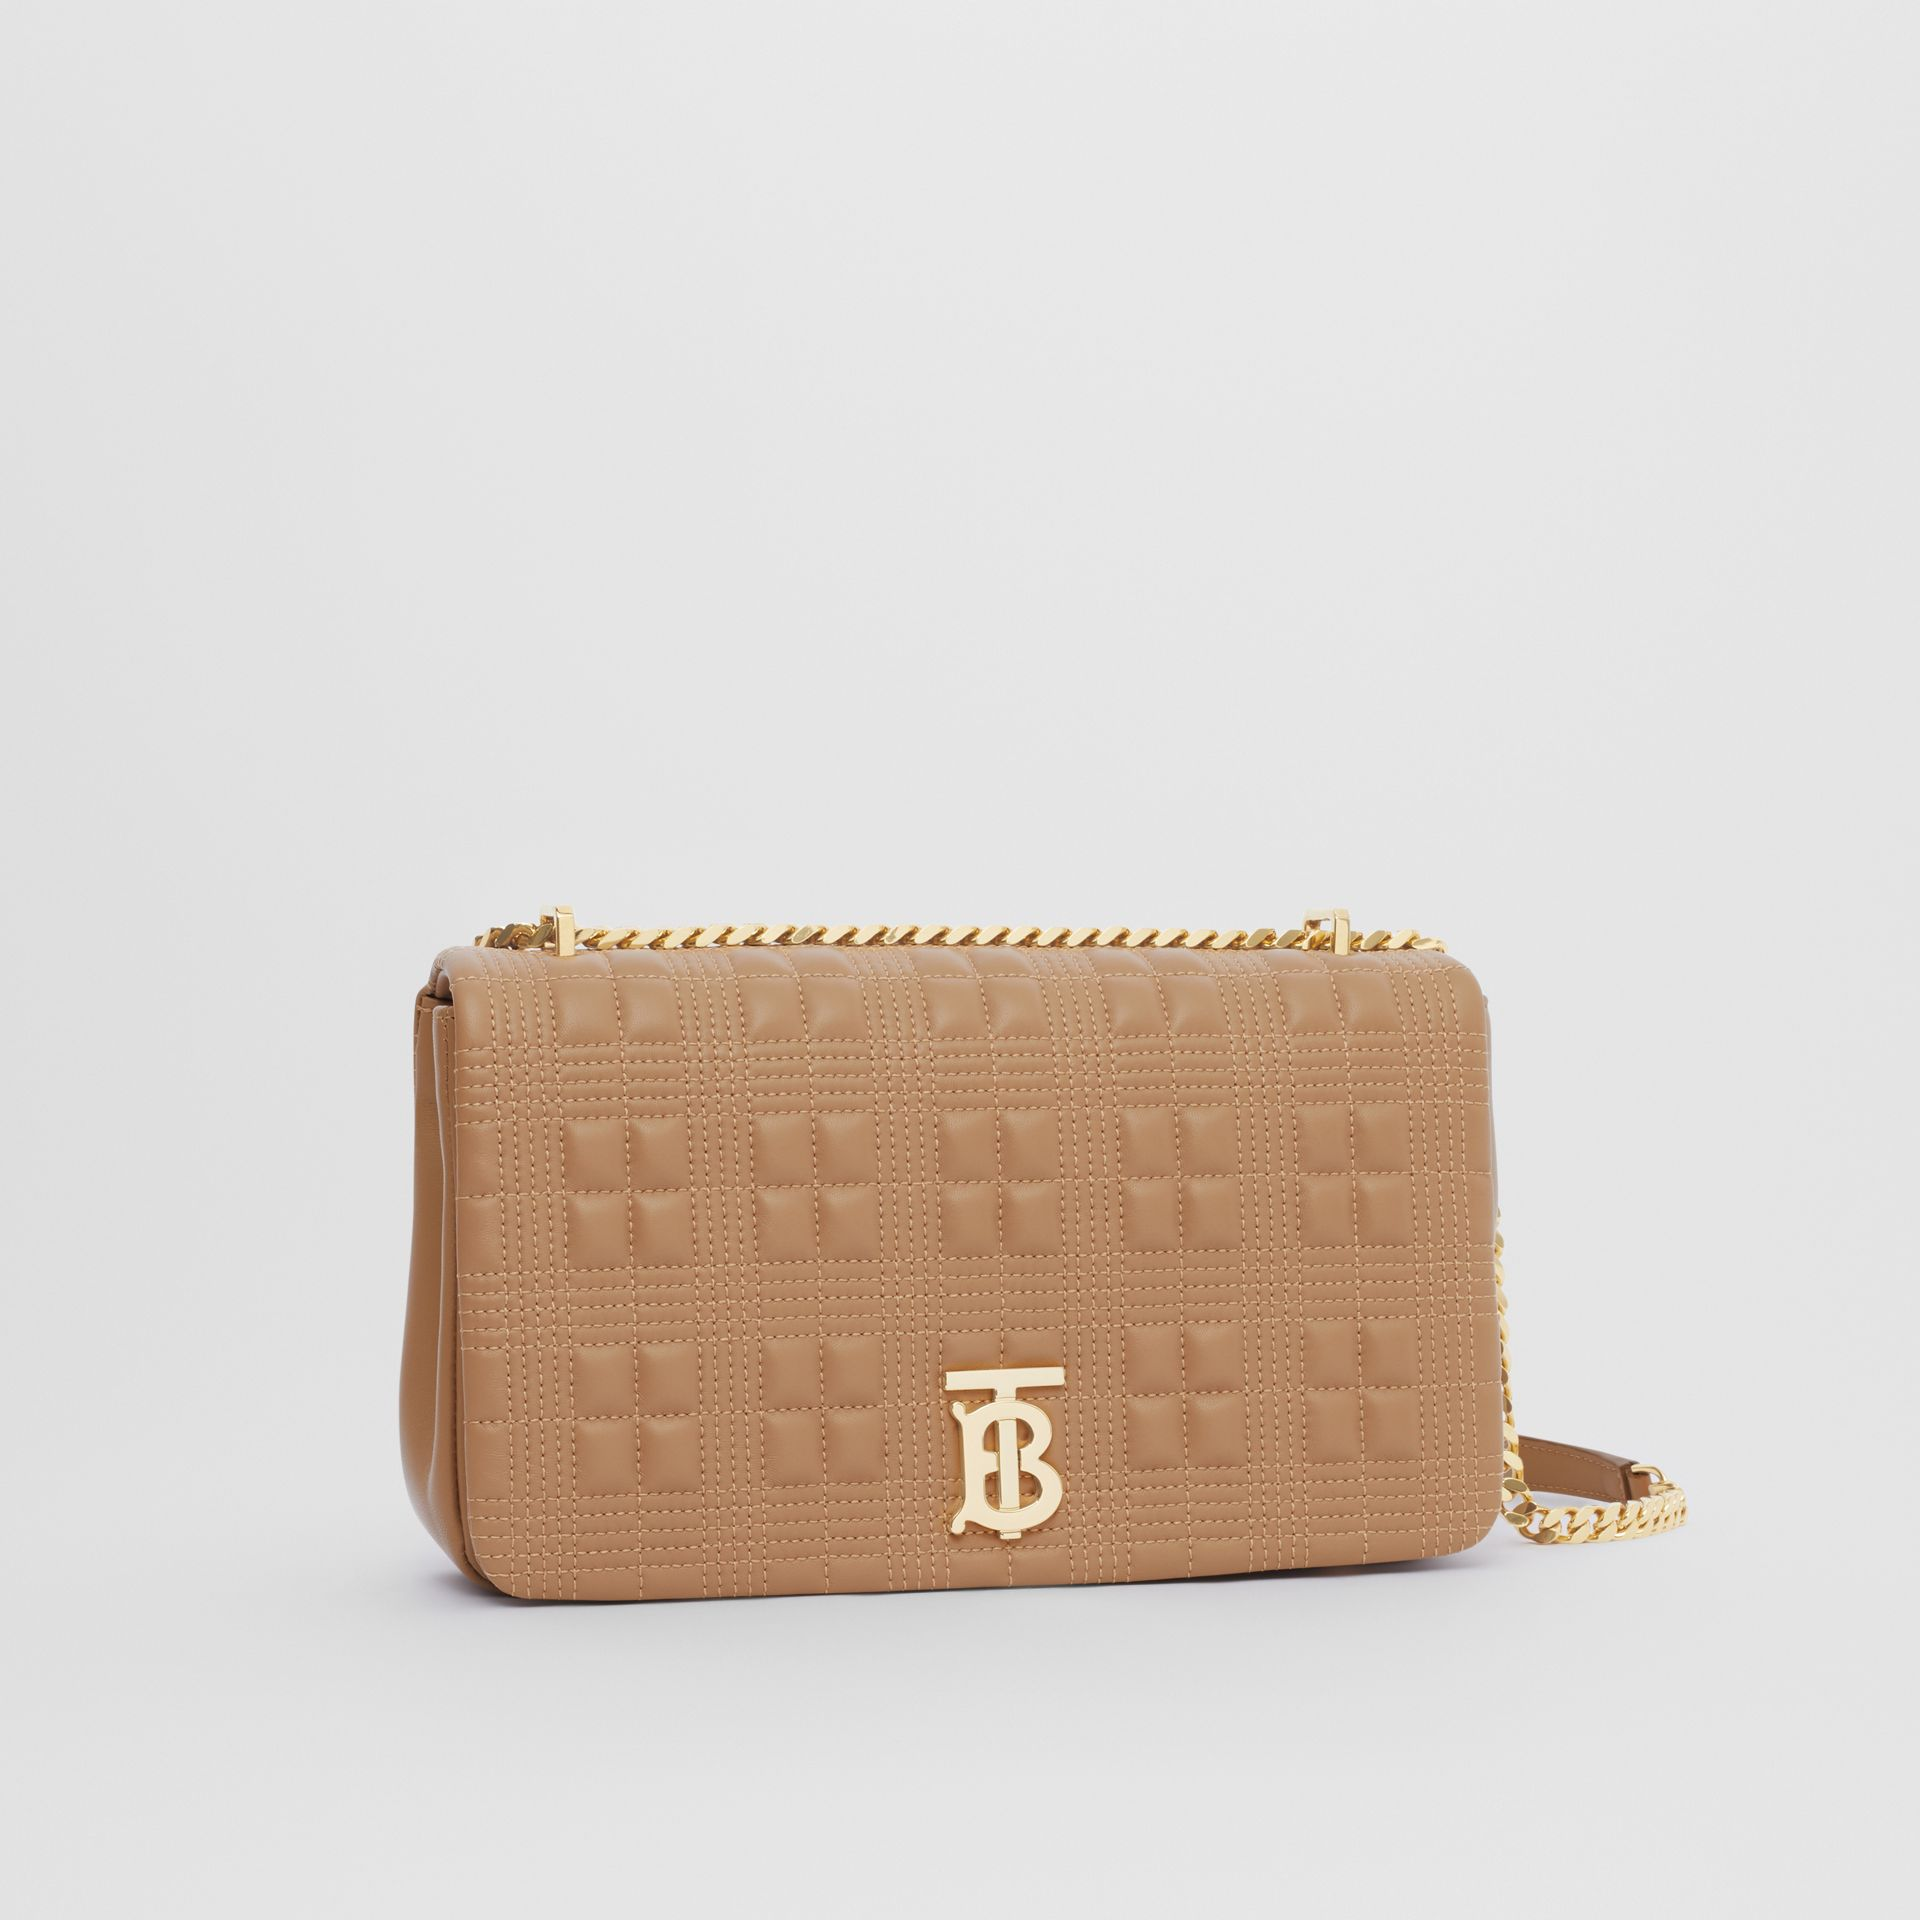 Medium Quilted Lambskin Lola Bag in Camel - Women | Burberry United Kingdom - gallery image 6